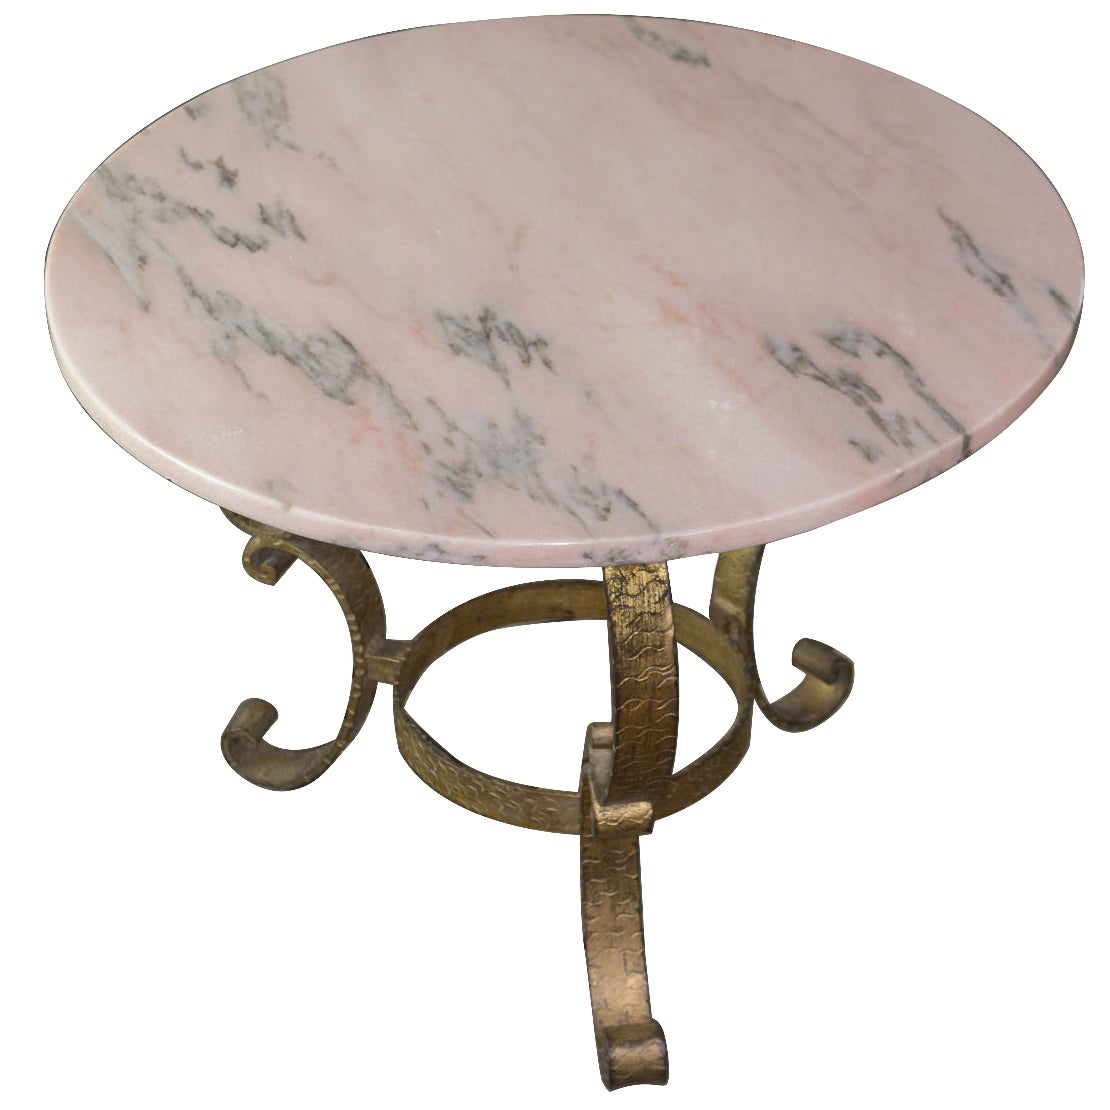 Small Round Gilt Metal Coffee Table with Pink Marble Top